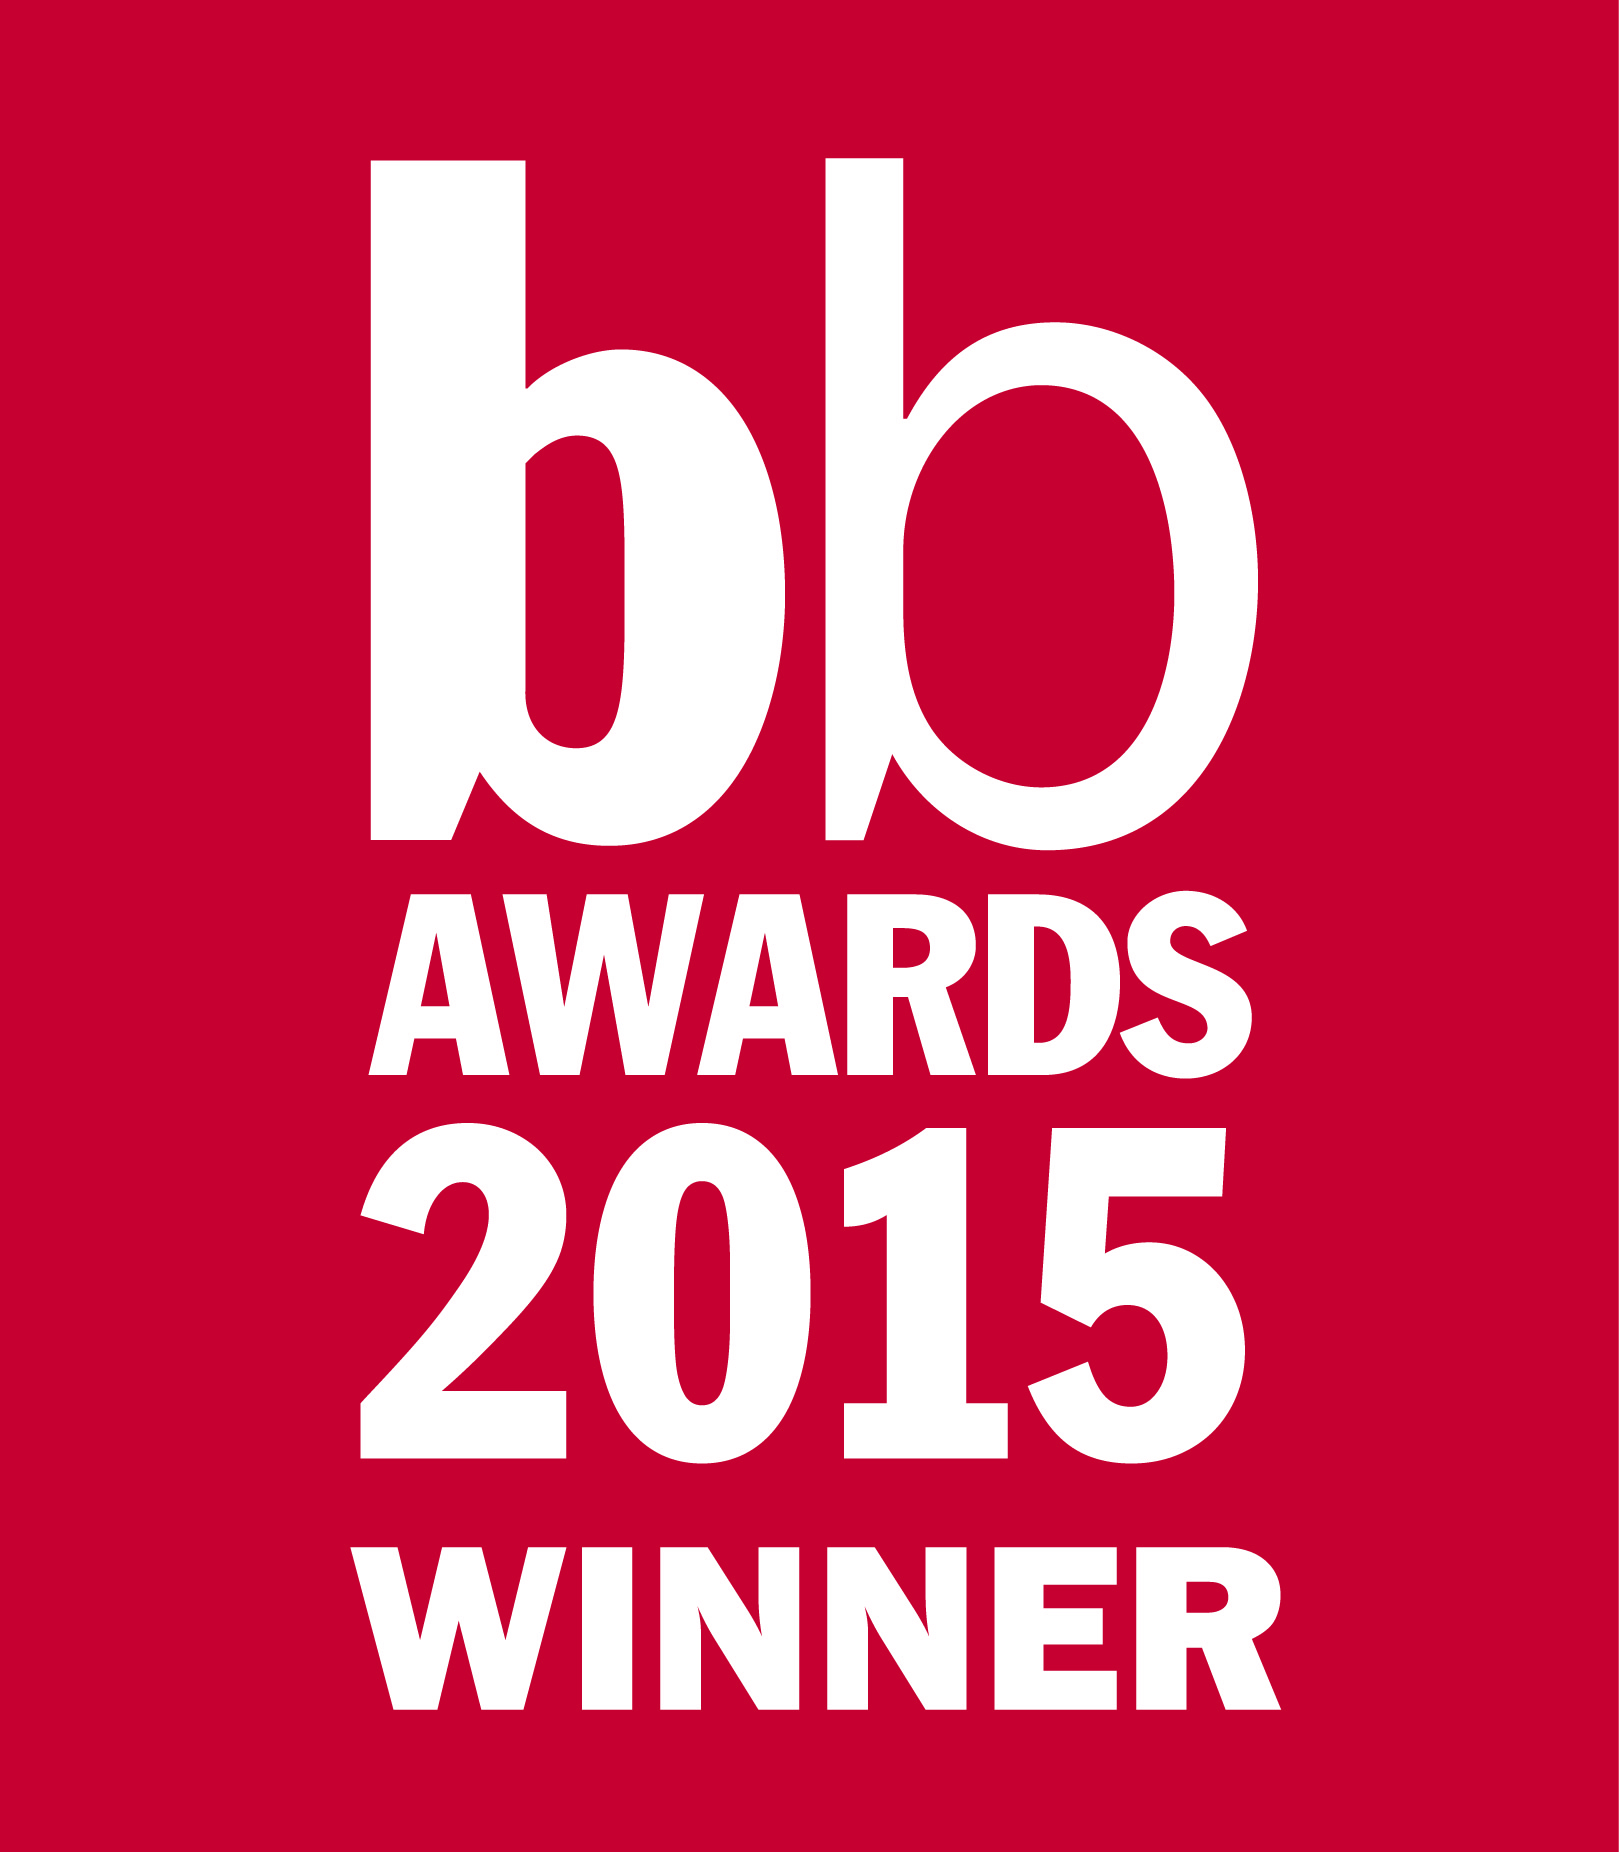 BB Awards 2015 winner logo-01